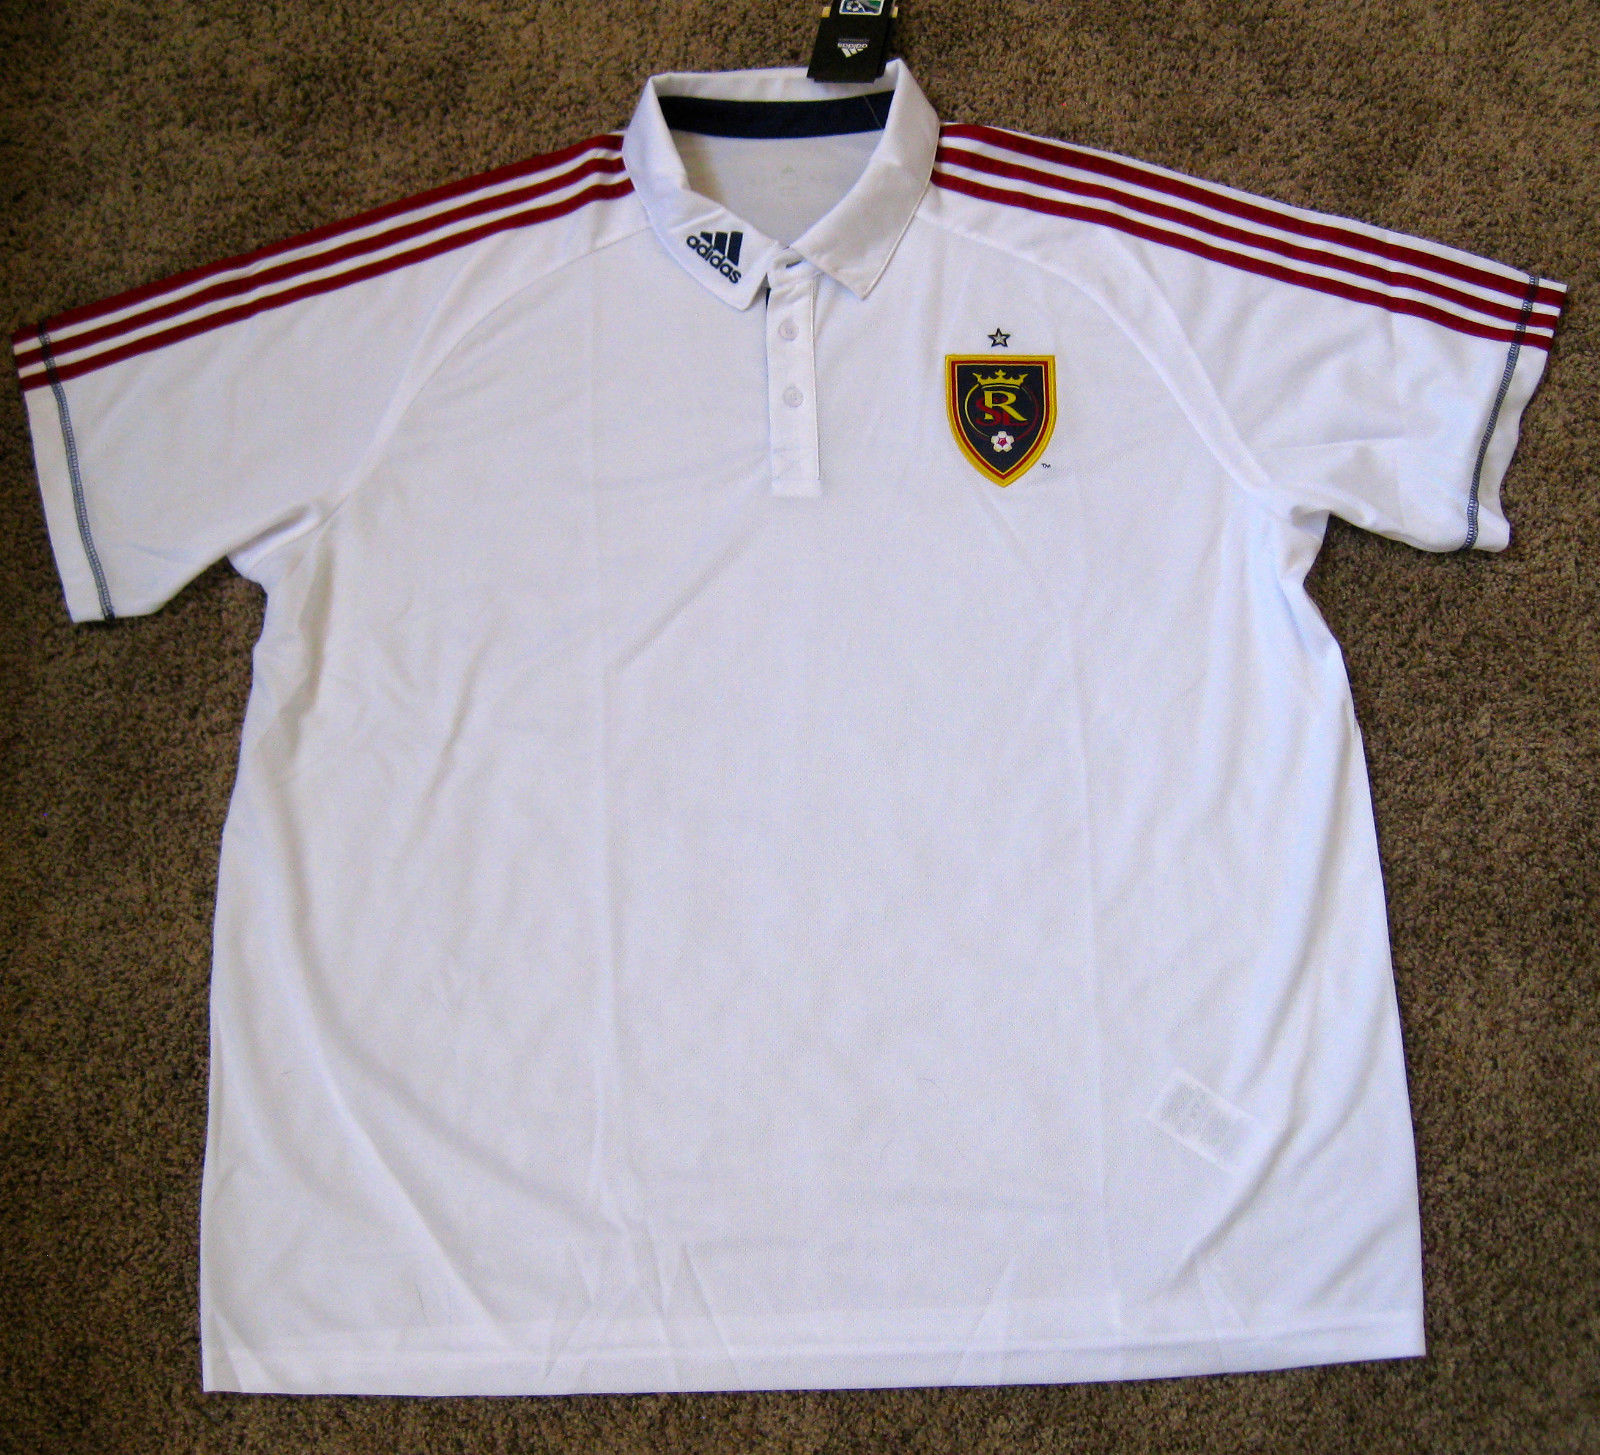 Adidas Rsl Real Salt Lake Soccer Jersey Polo and 50 similar items. S l1600 ab58b1e08